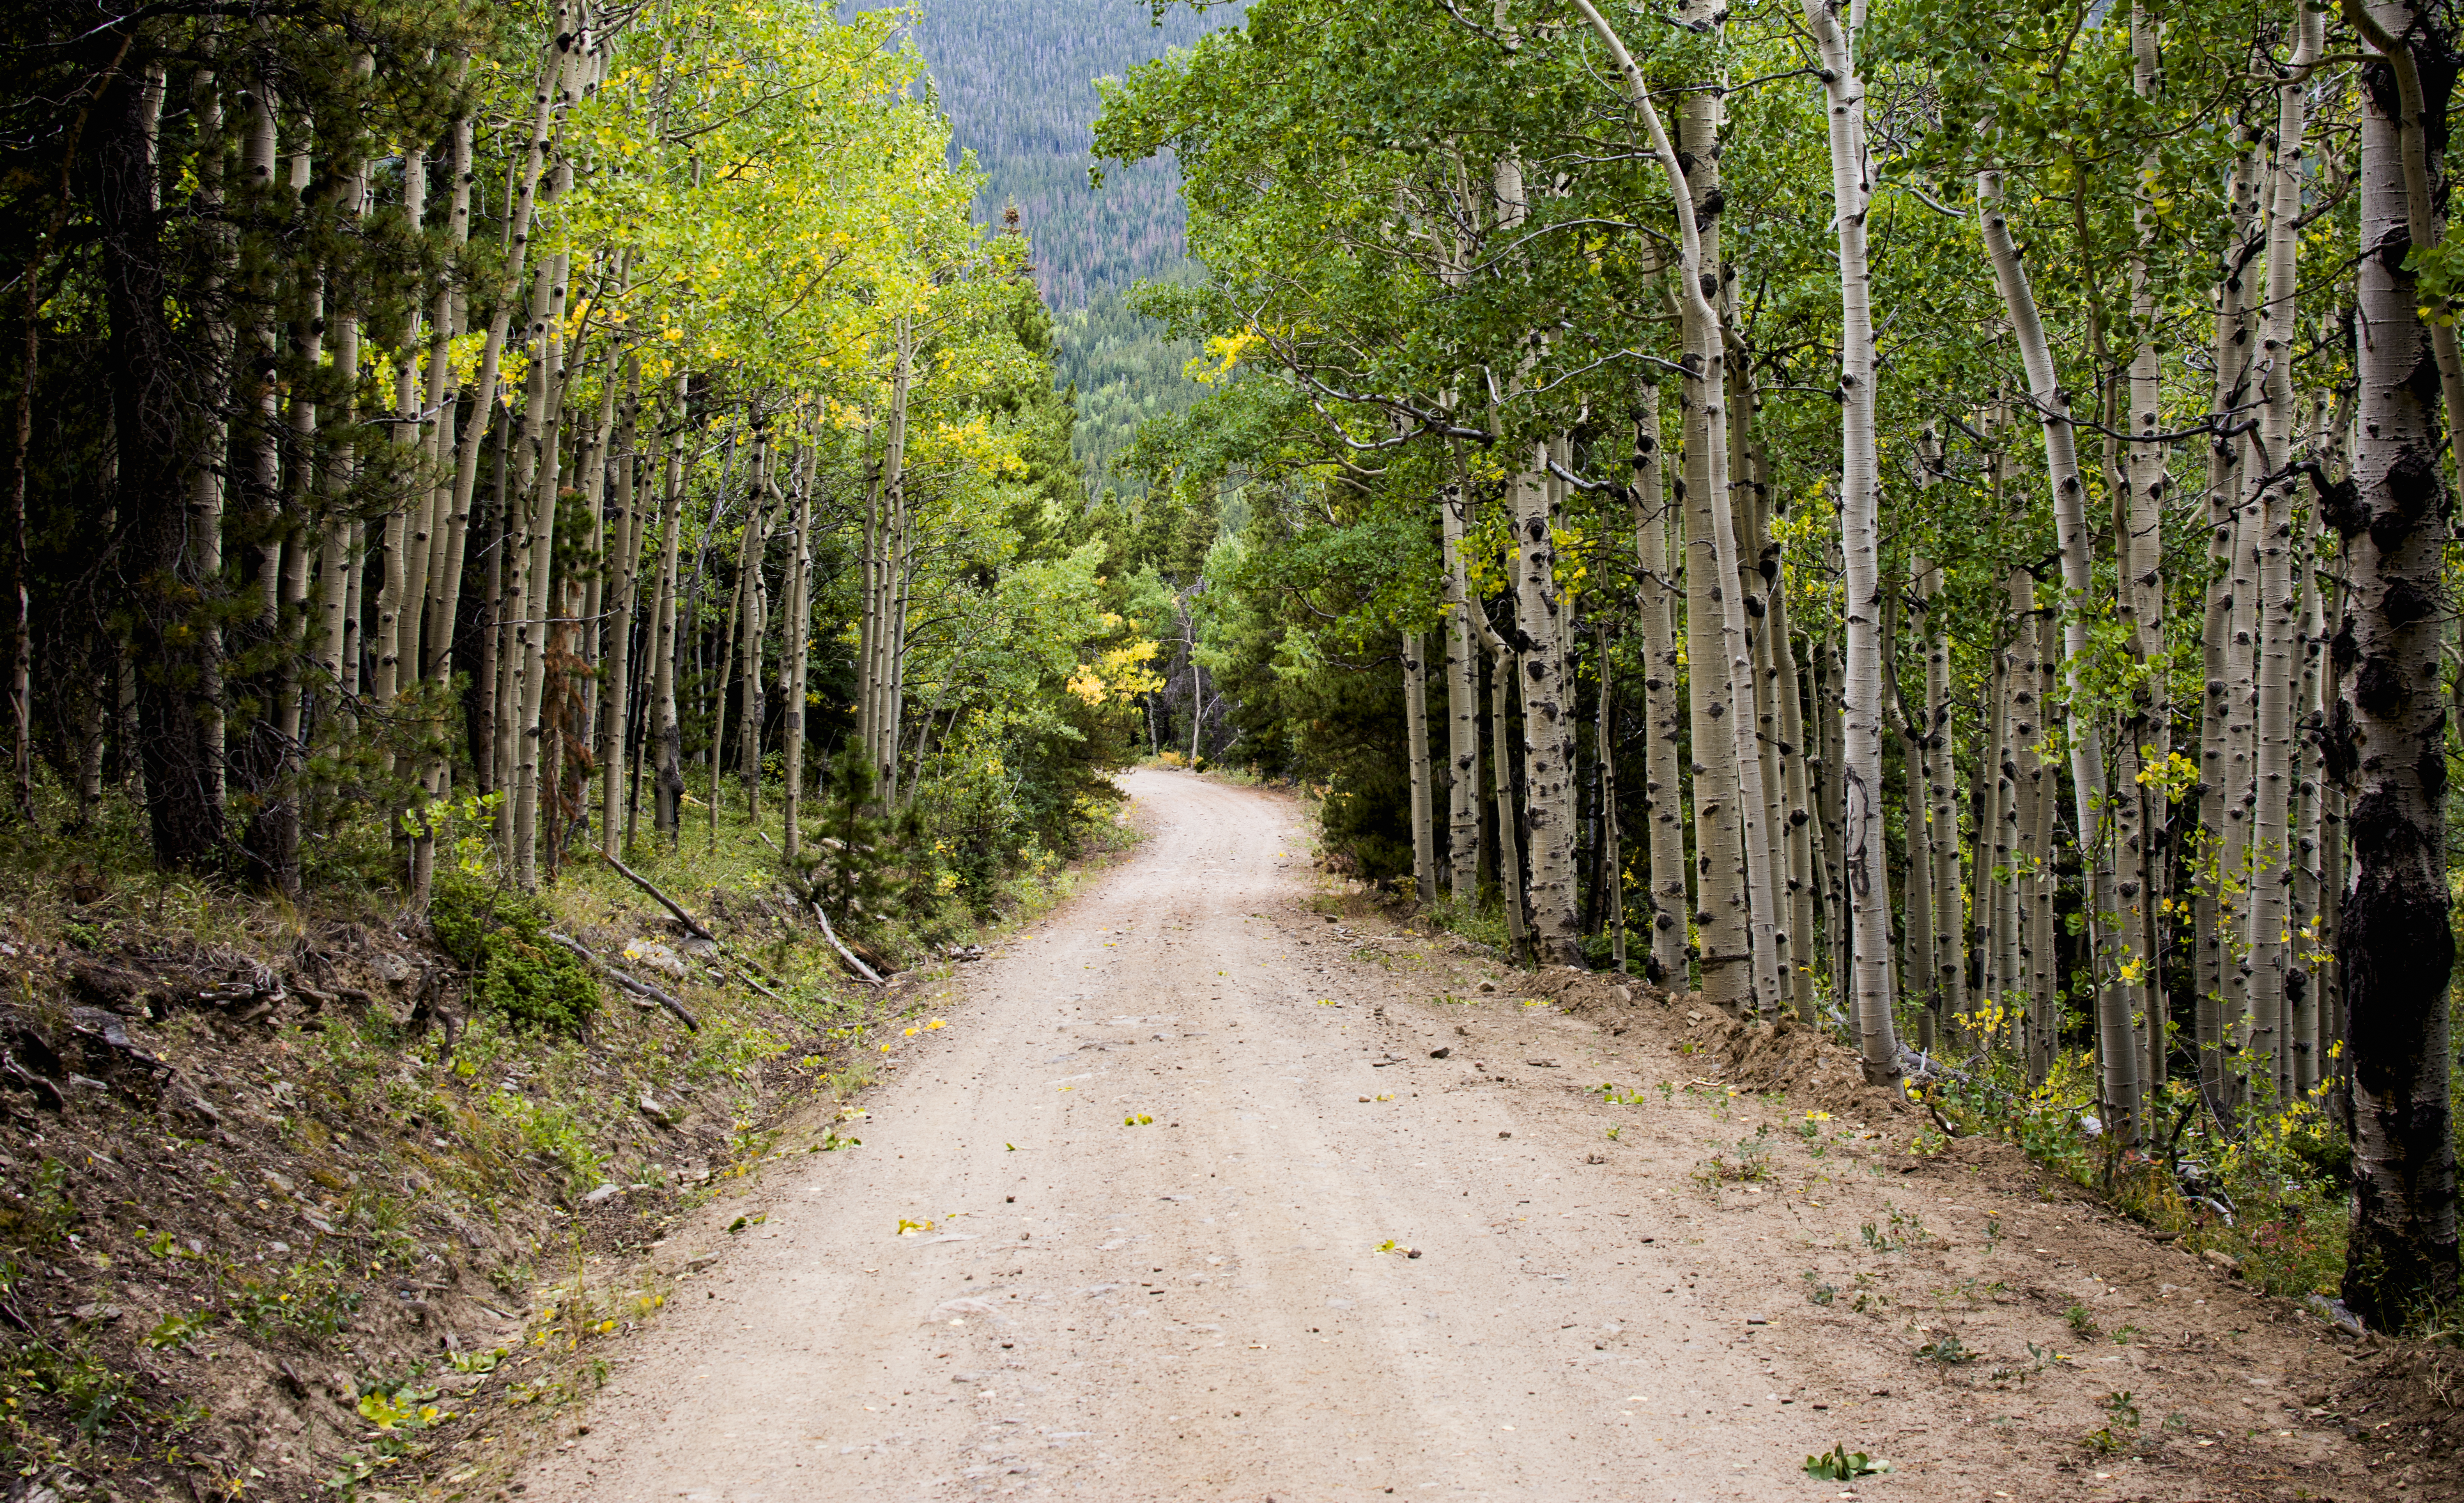 Fall Landscape Free Wallpaper Dirt Road Surrounded Green Grasses By Trees At Daytime